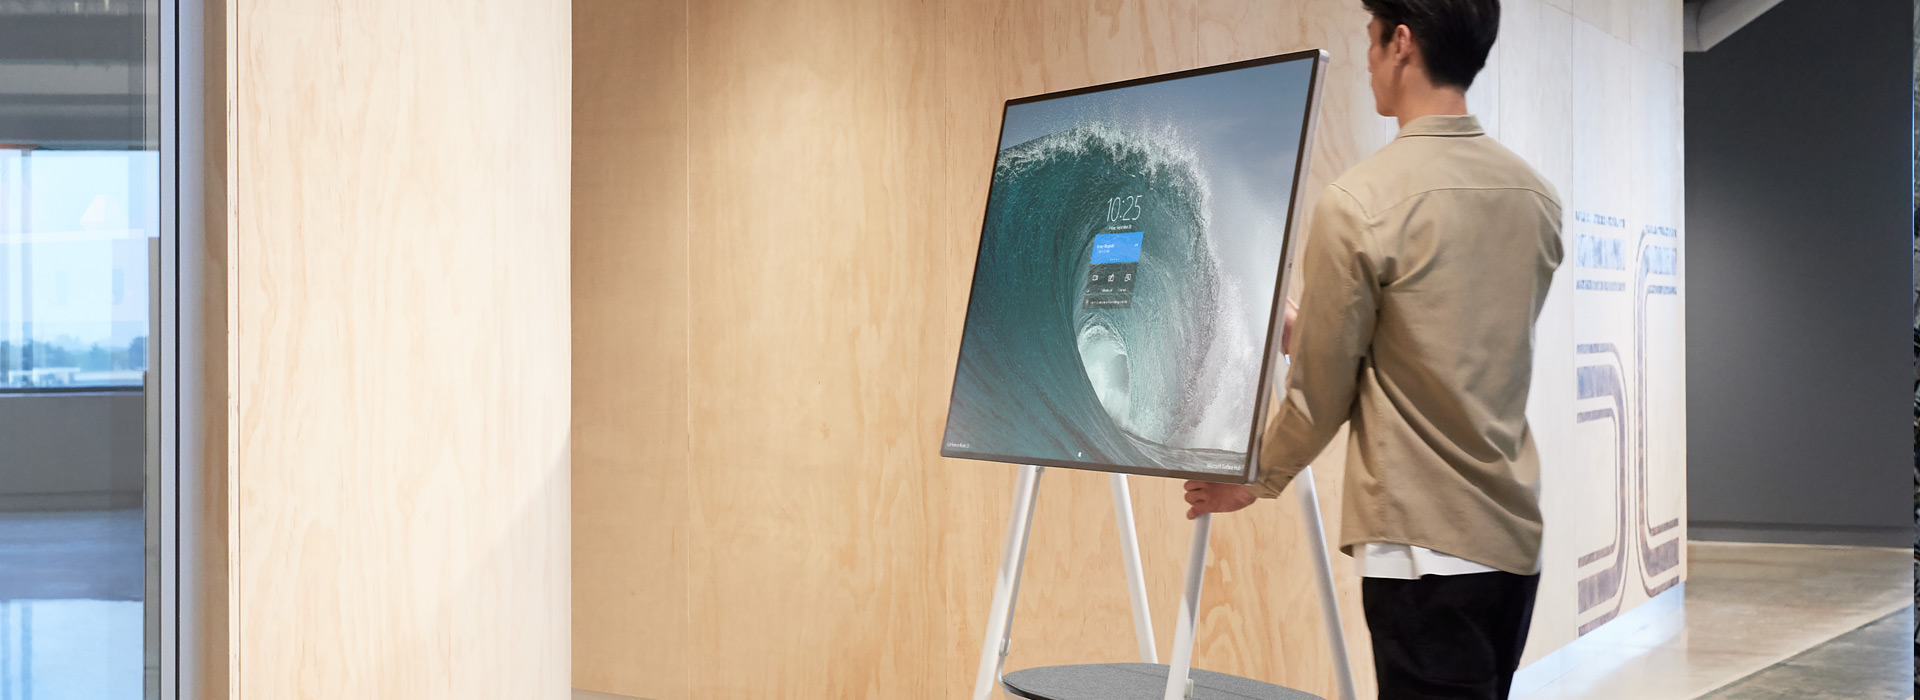 Un uomo trasporta un dispositivo Surface Hub 2S su un supporto mobile